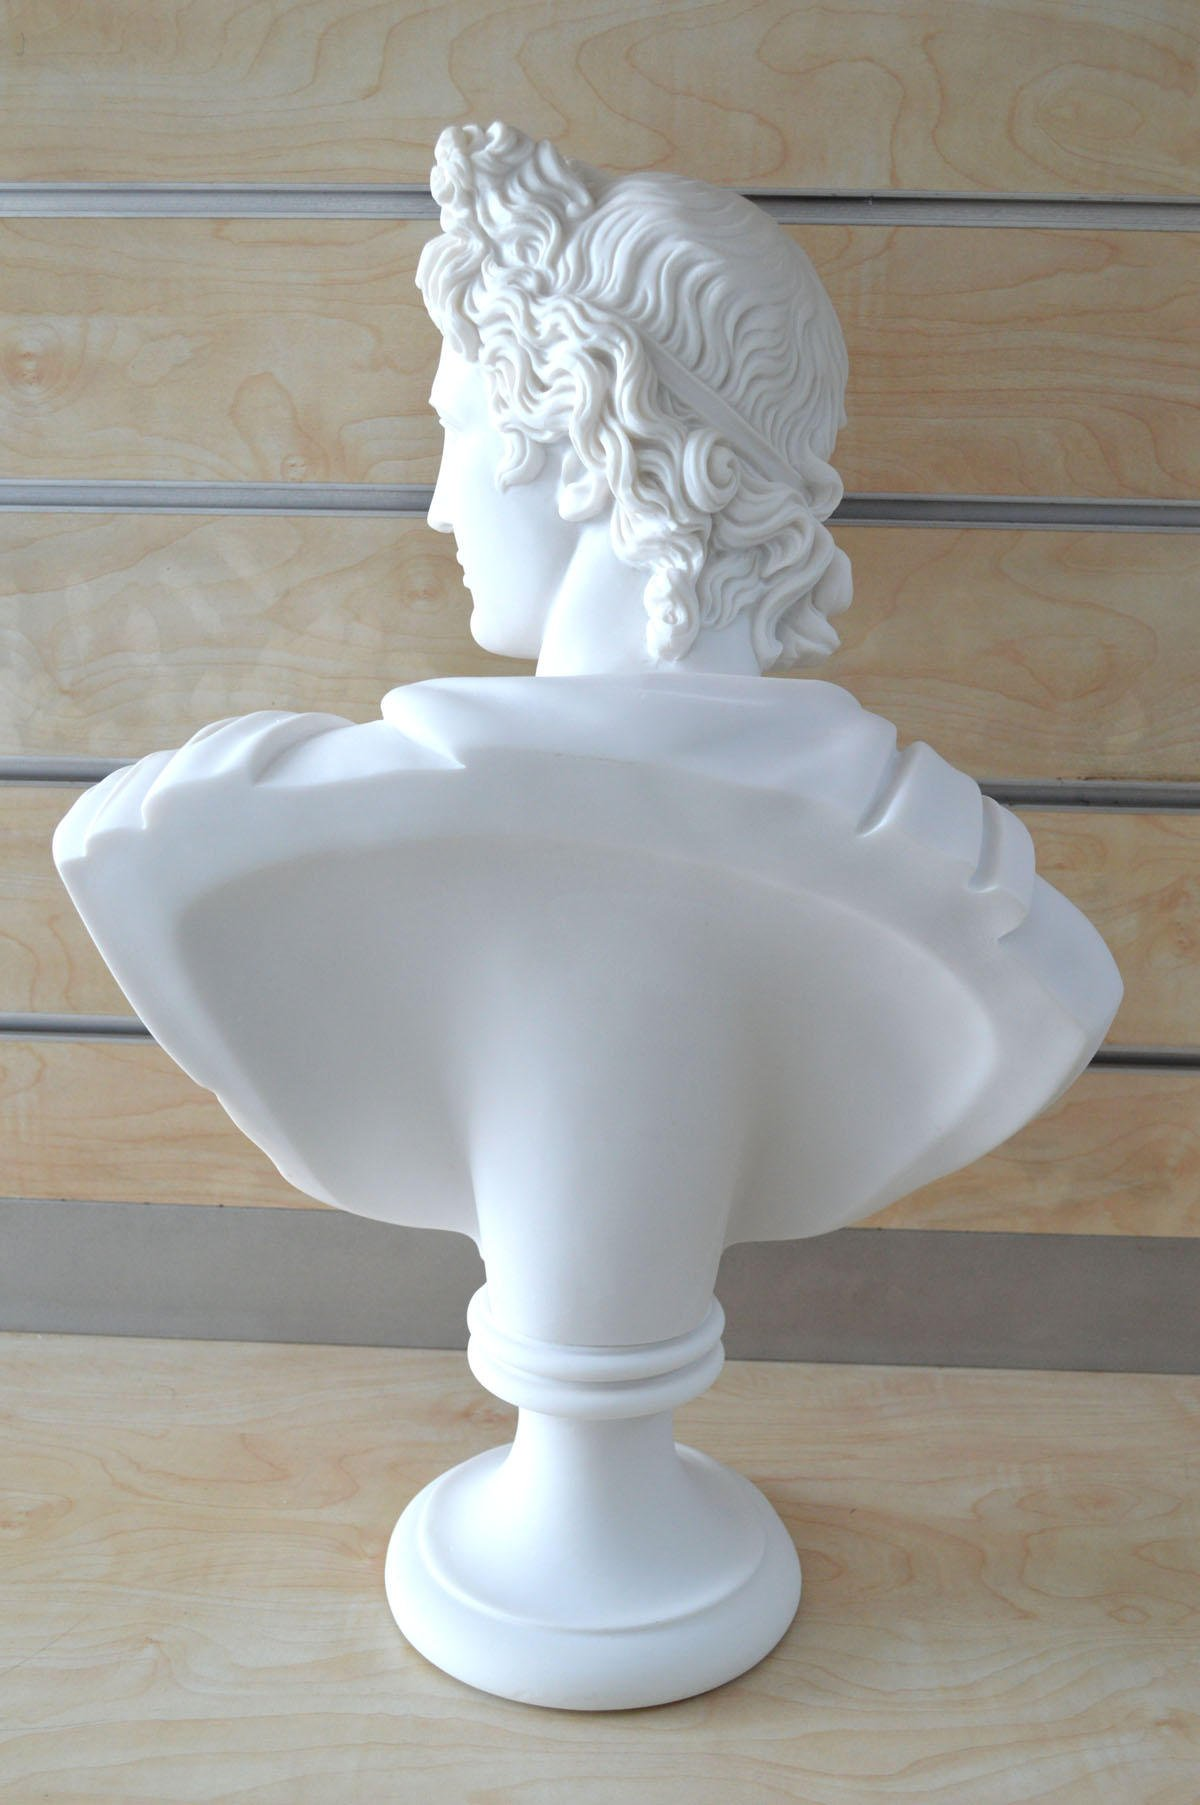 God Apollo Bust Sculpture Ancient Greek God of Sun and Poetry Grand Statue by Estia Creations (Image #4)